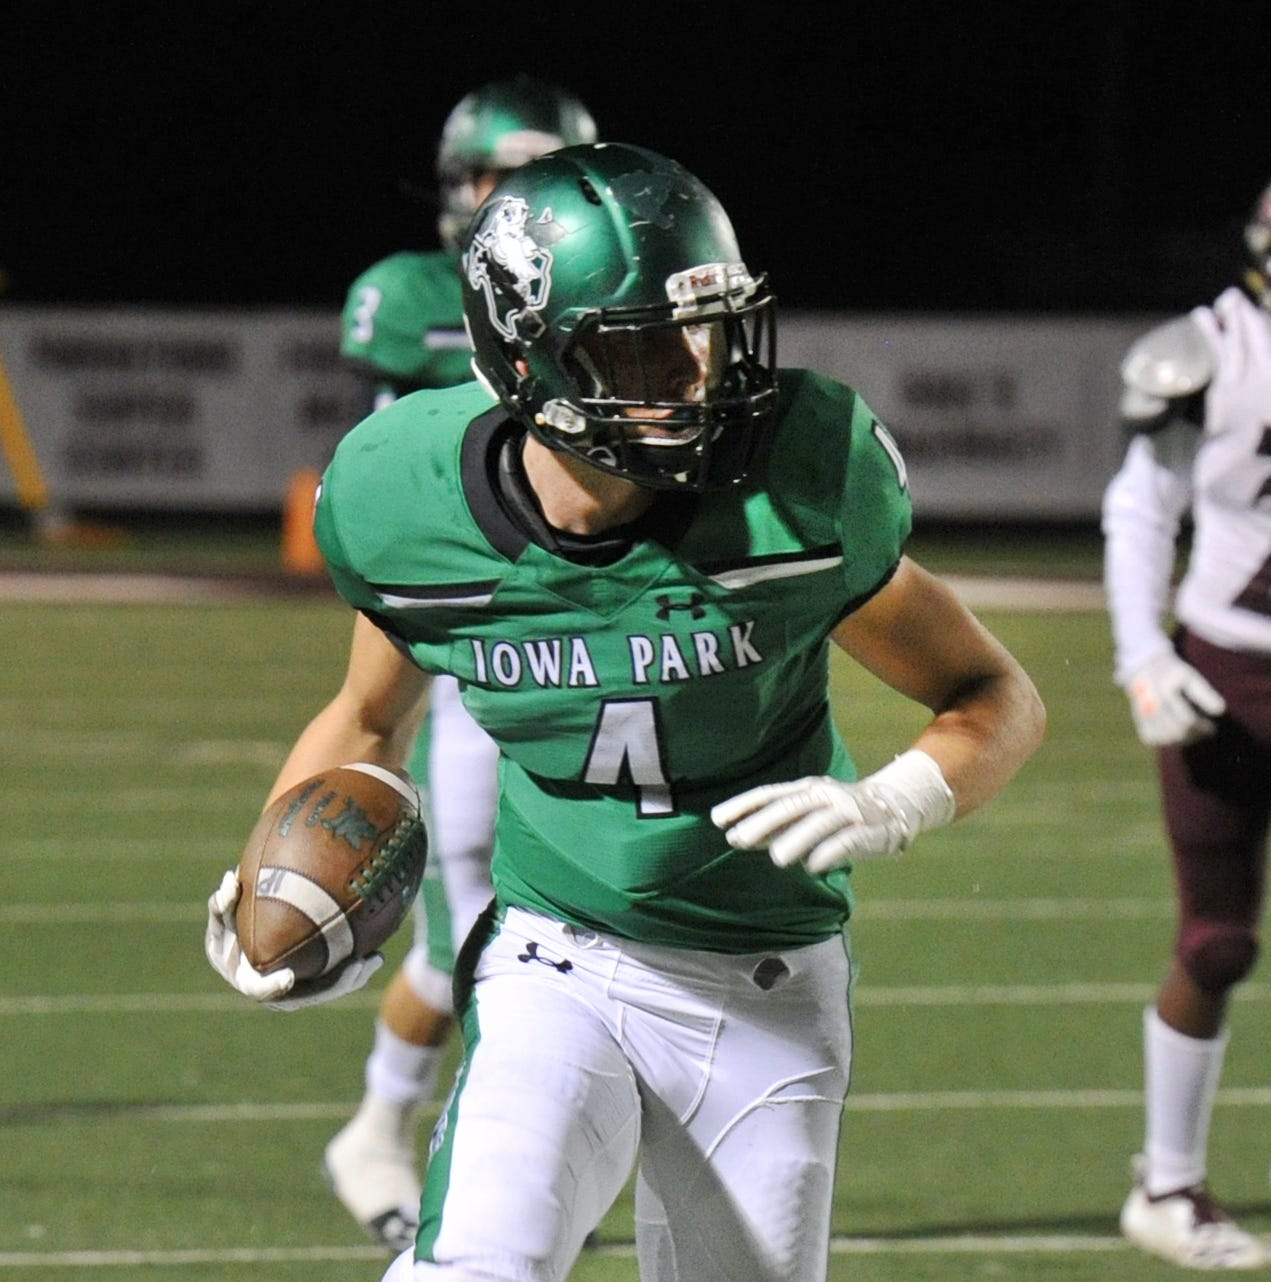 Coheleys and Iowa Park Hawks have been perfect fit